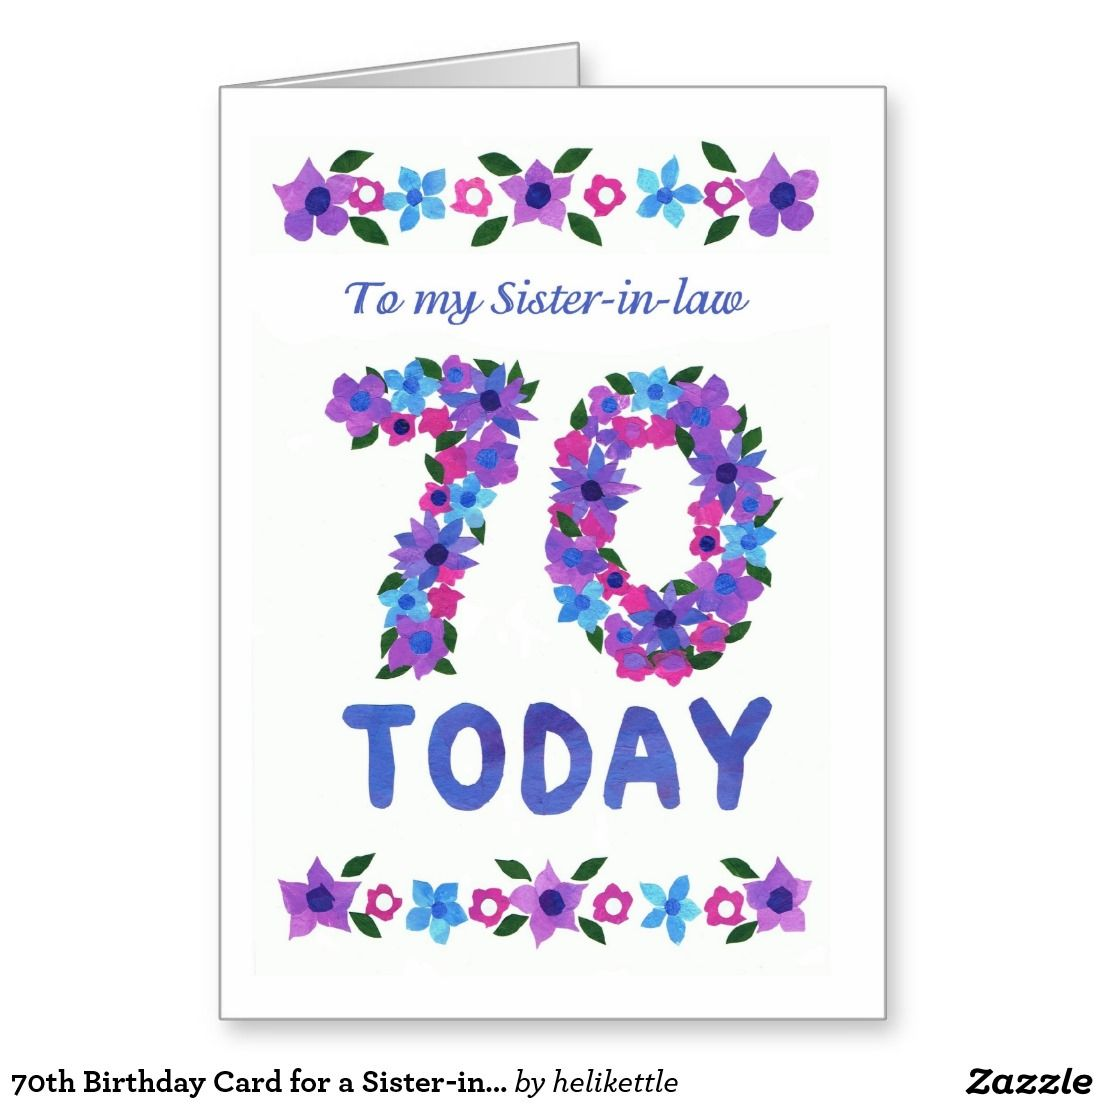 70th birthday card for a sister in law collage flowers up to 70th birthday card for a sister in law collage flowers up to bookmarktalkfo Image collections